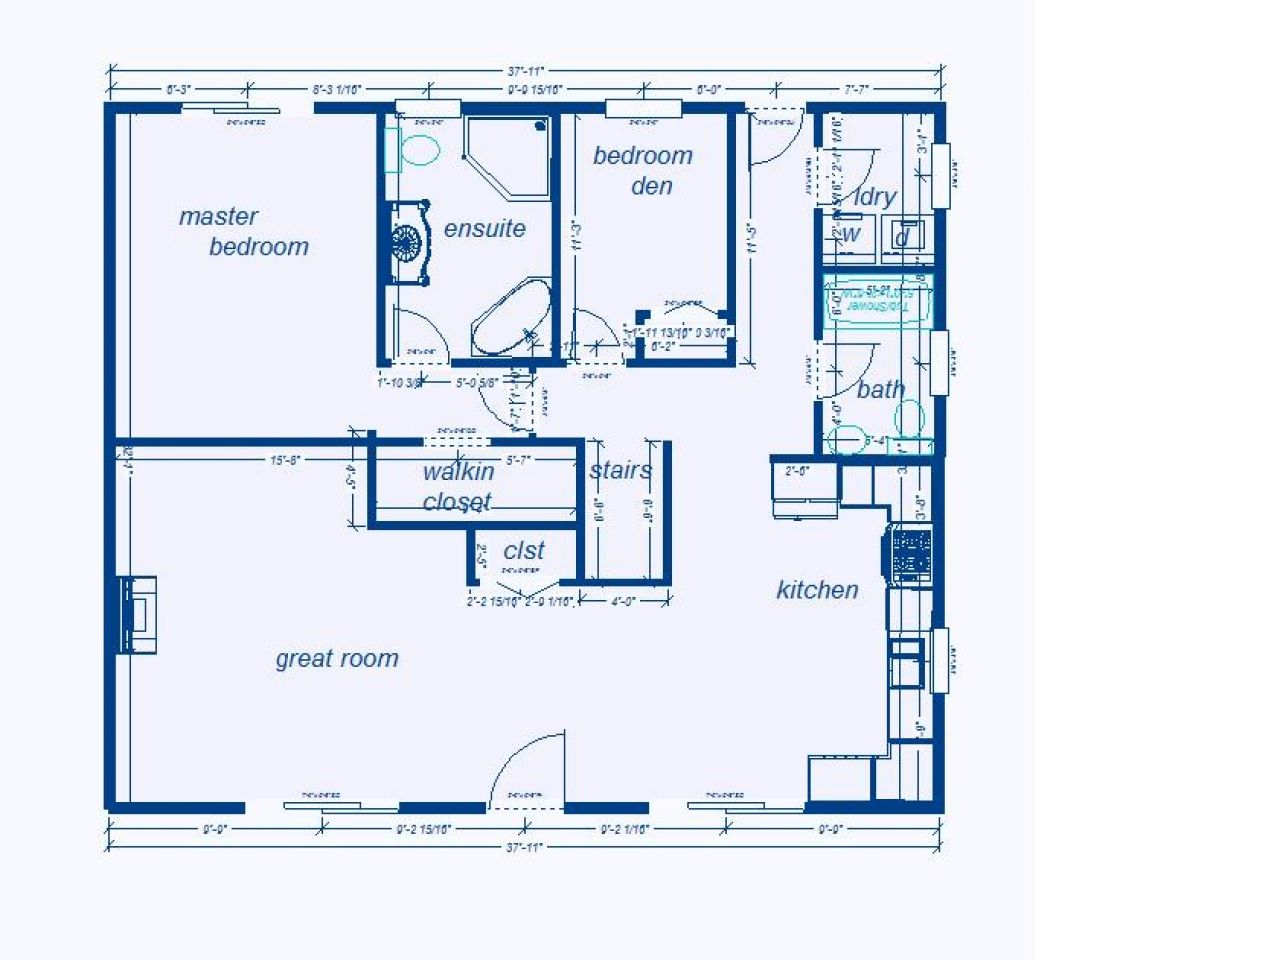 Awesome Foundation Plans For Houses Blueprint House Free In 12 Top ~ Planskill